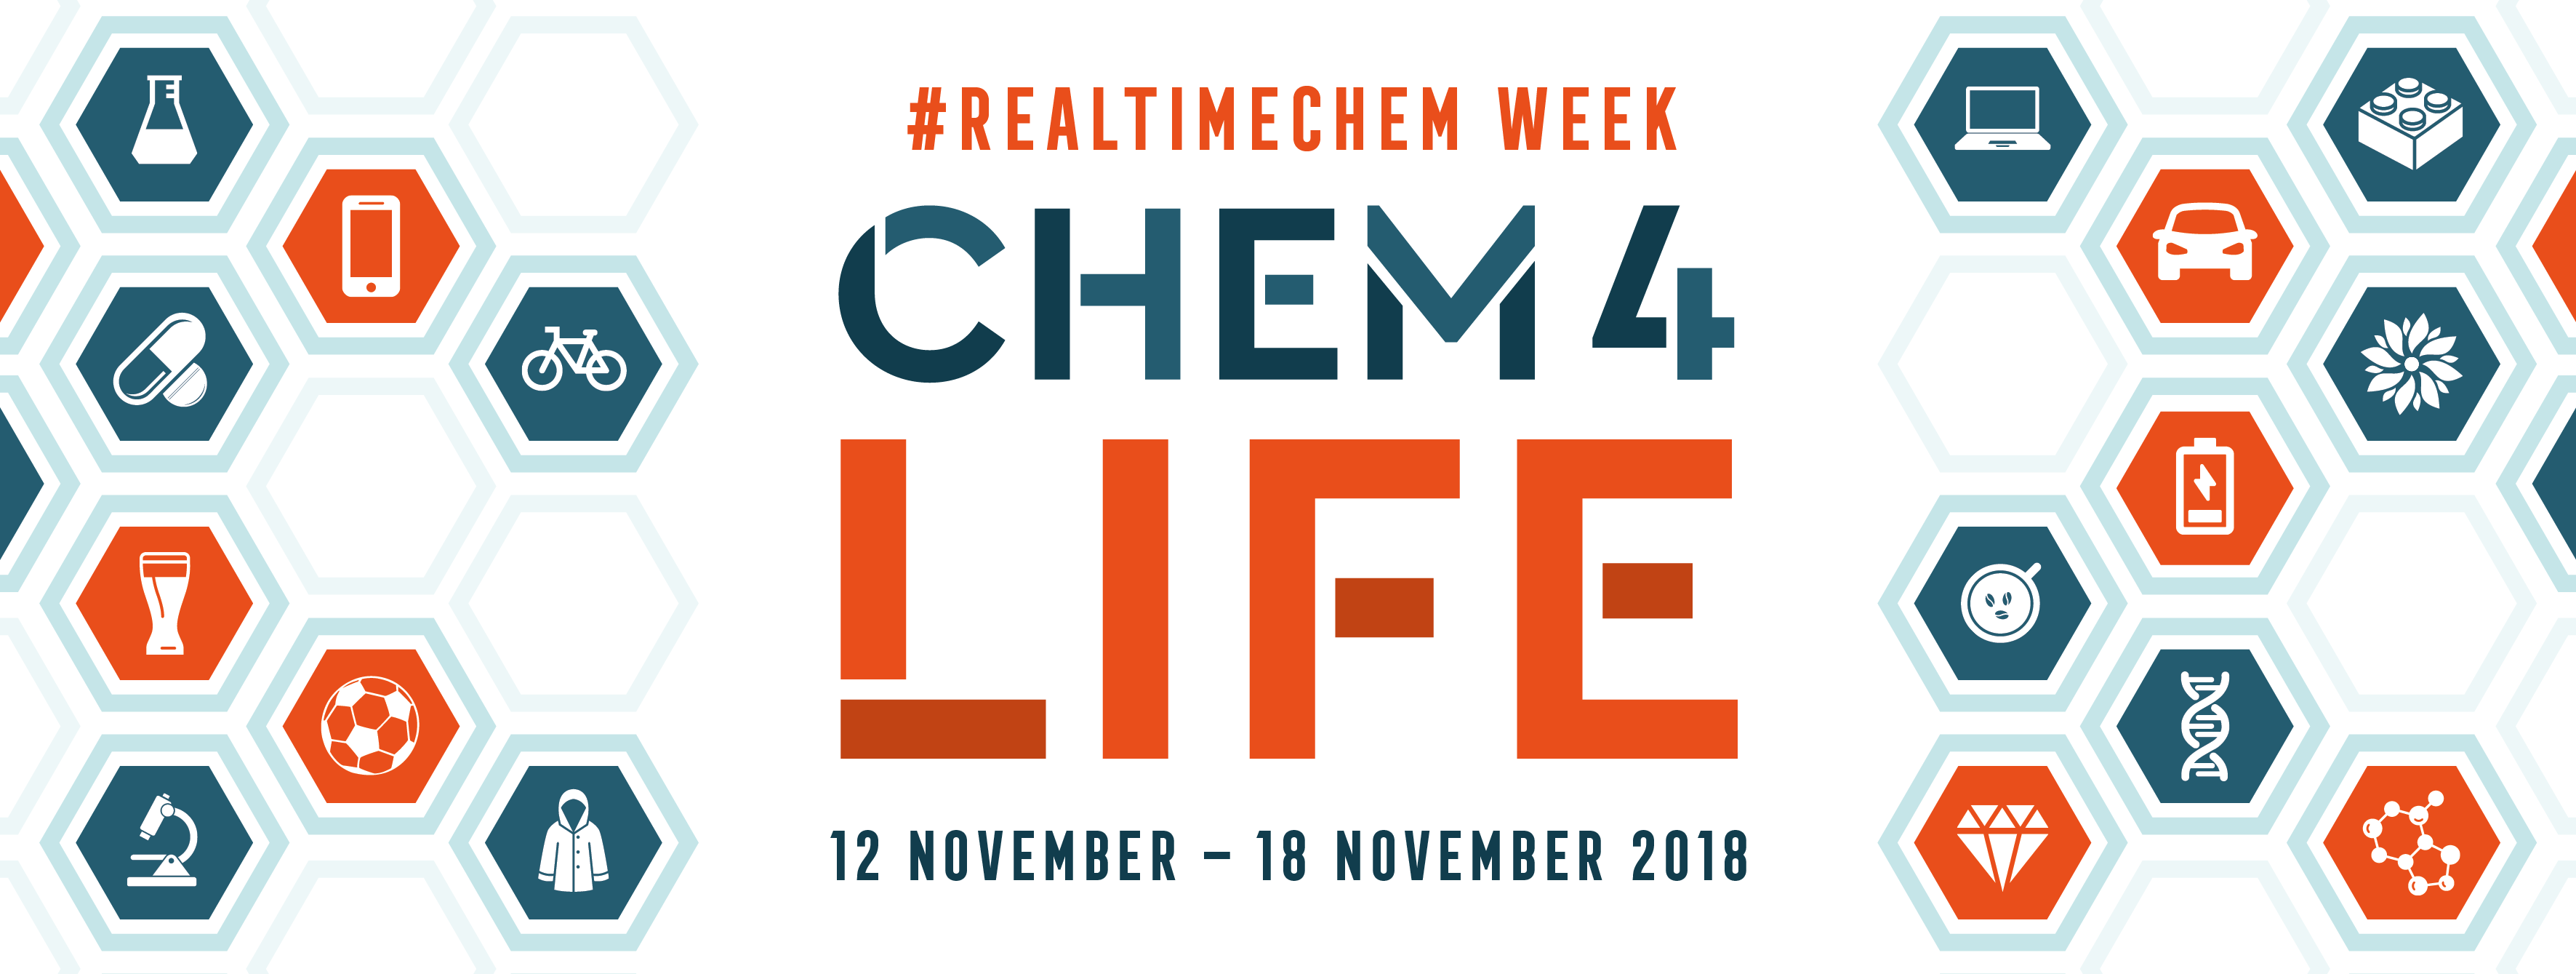 RealTimeChem Week 2018